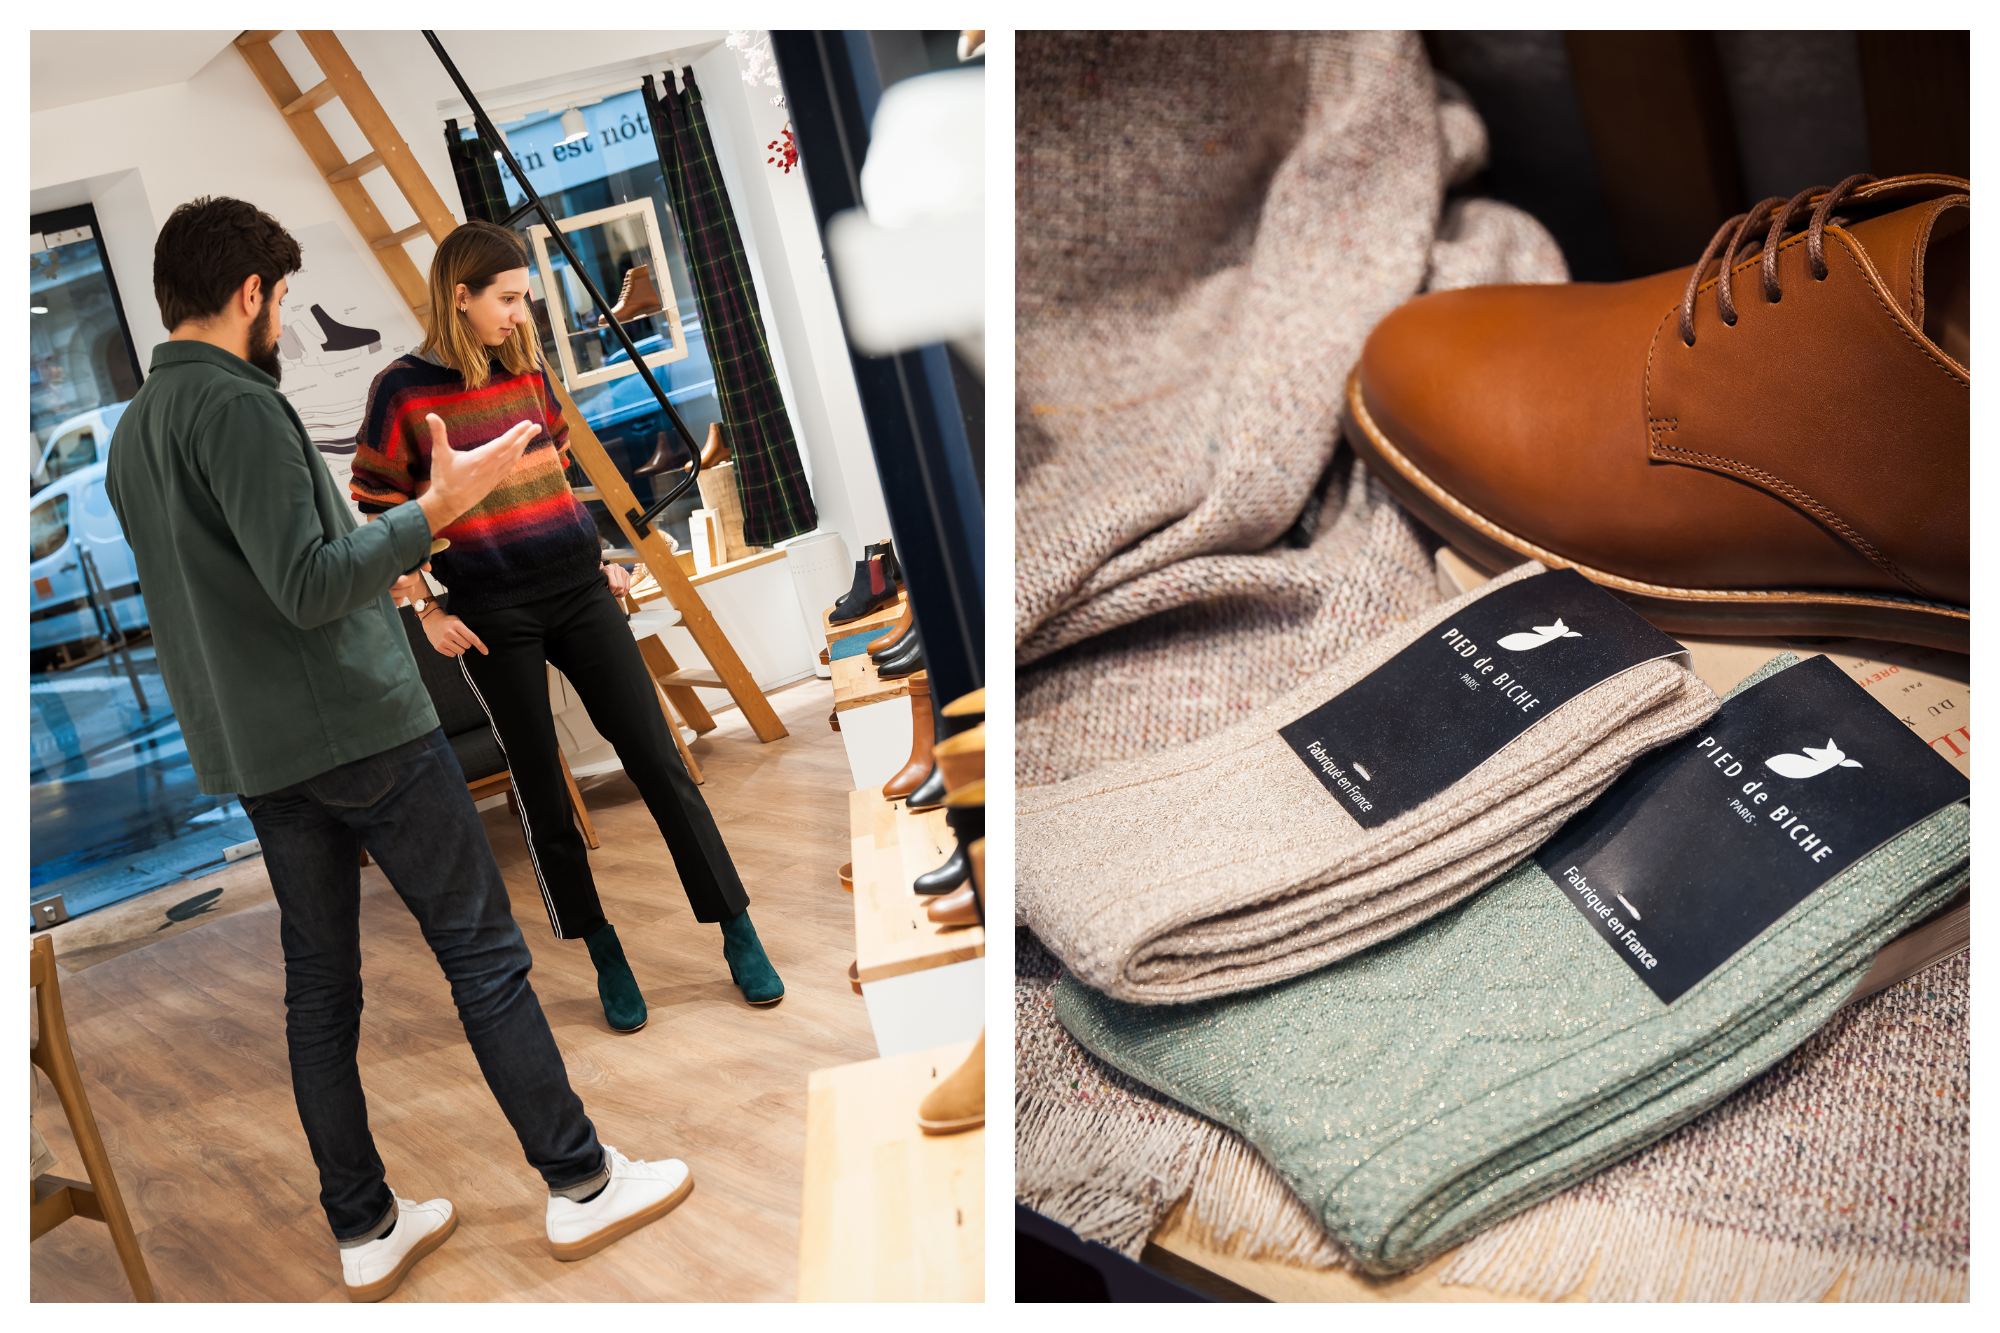 Shop attendant and customer are picking shoes out together at Pied de Biche store in Paris (left). They also have accessories like these olive green and beige socks (right).